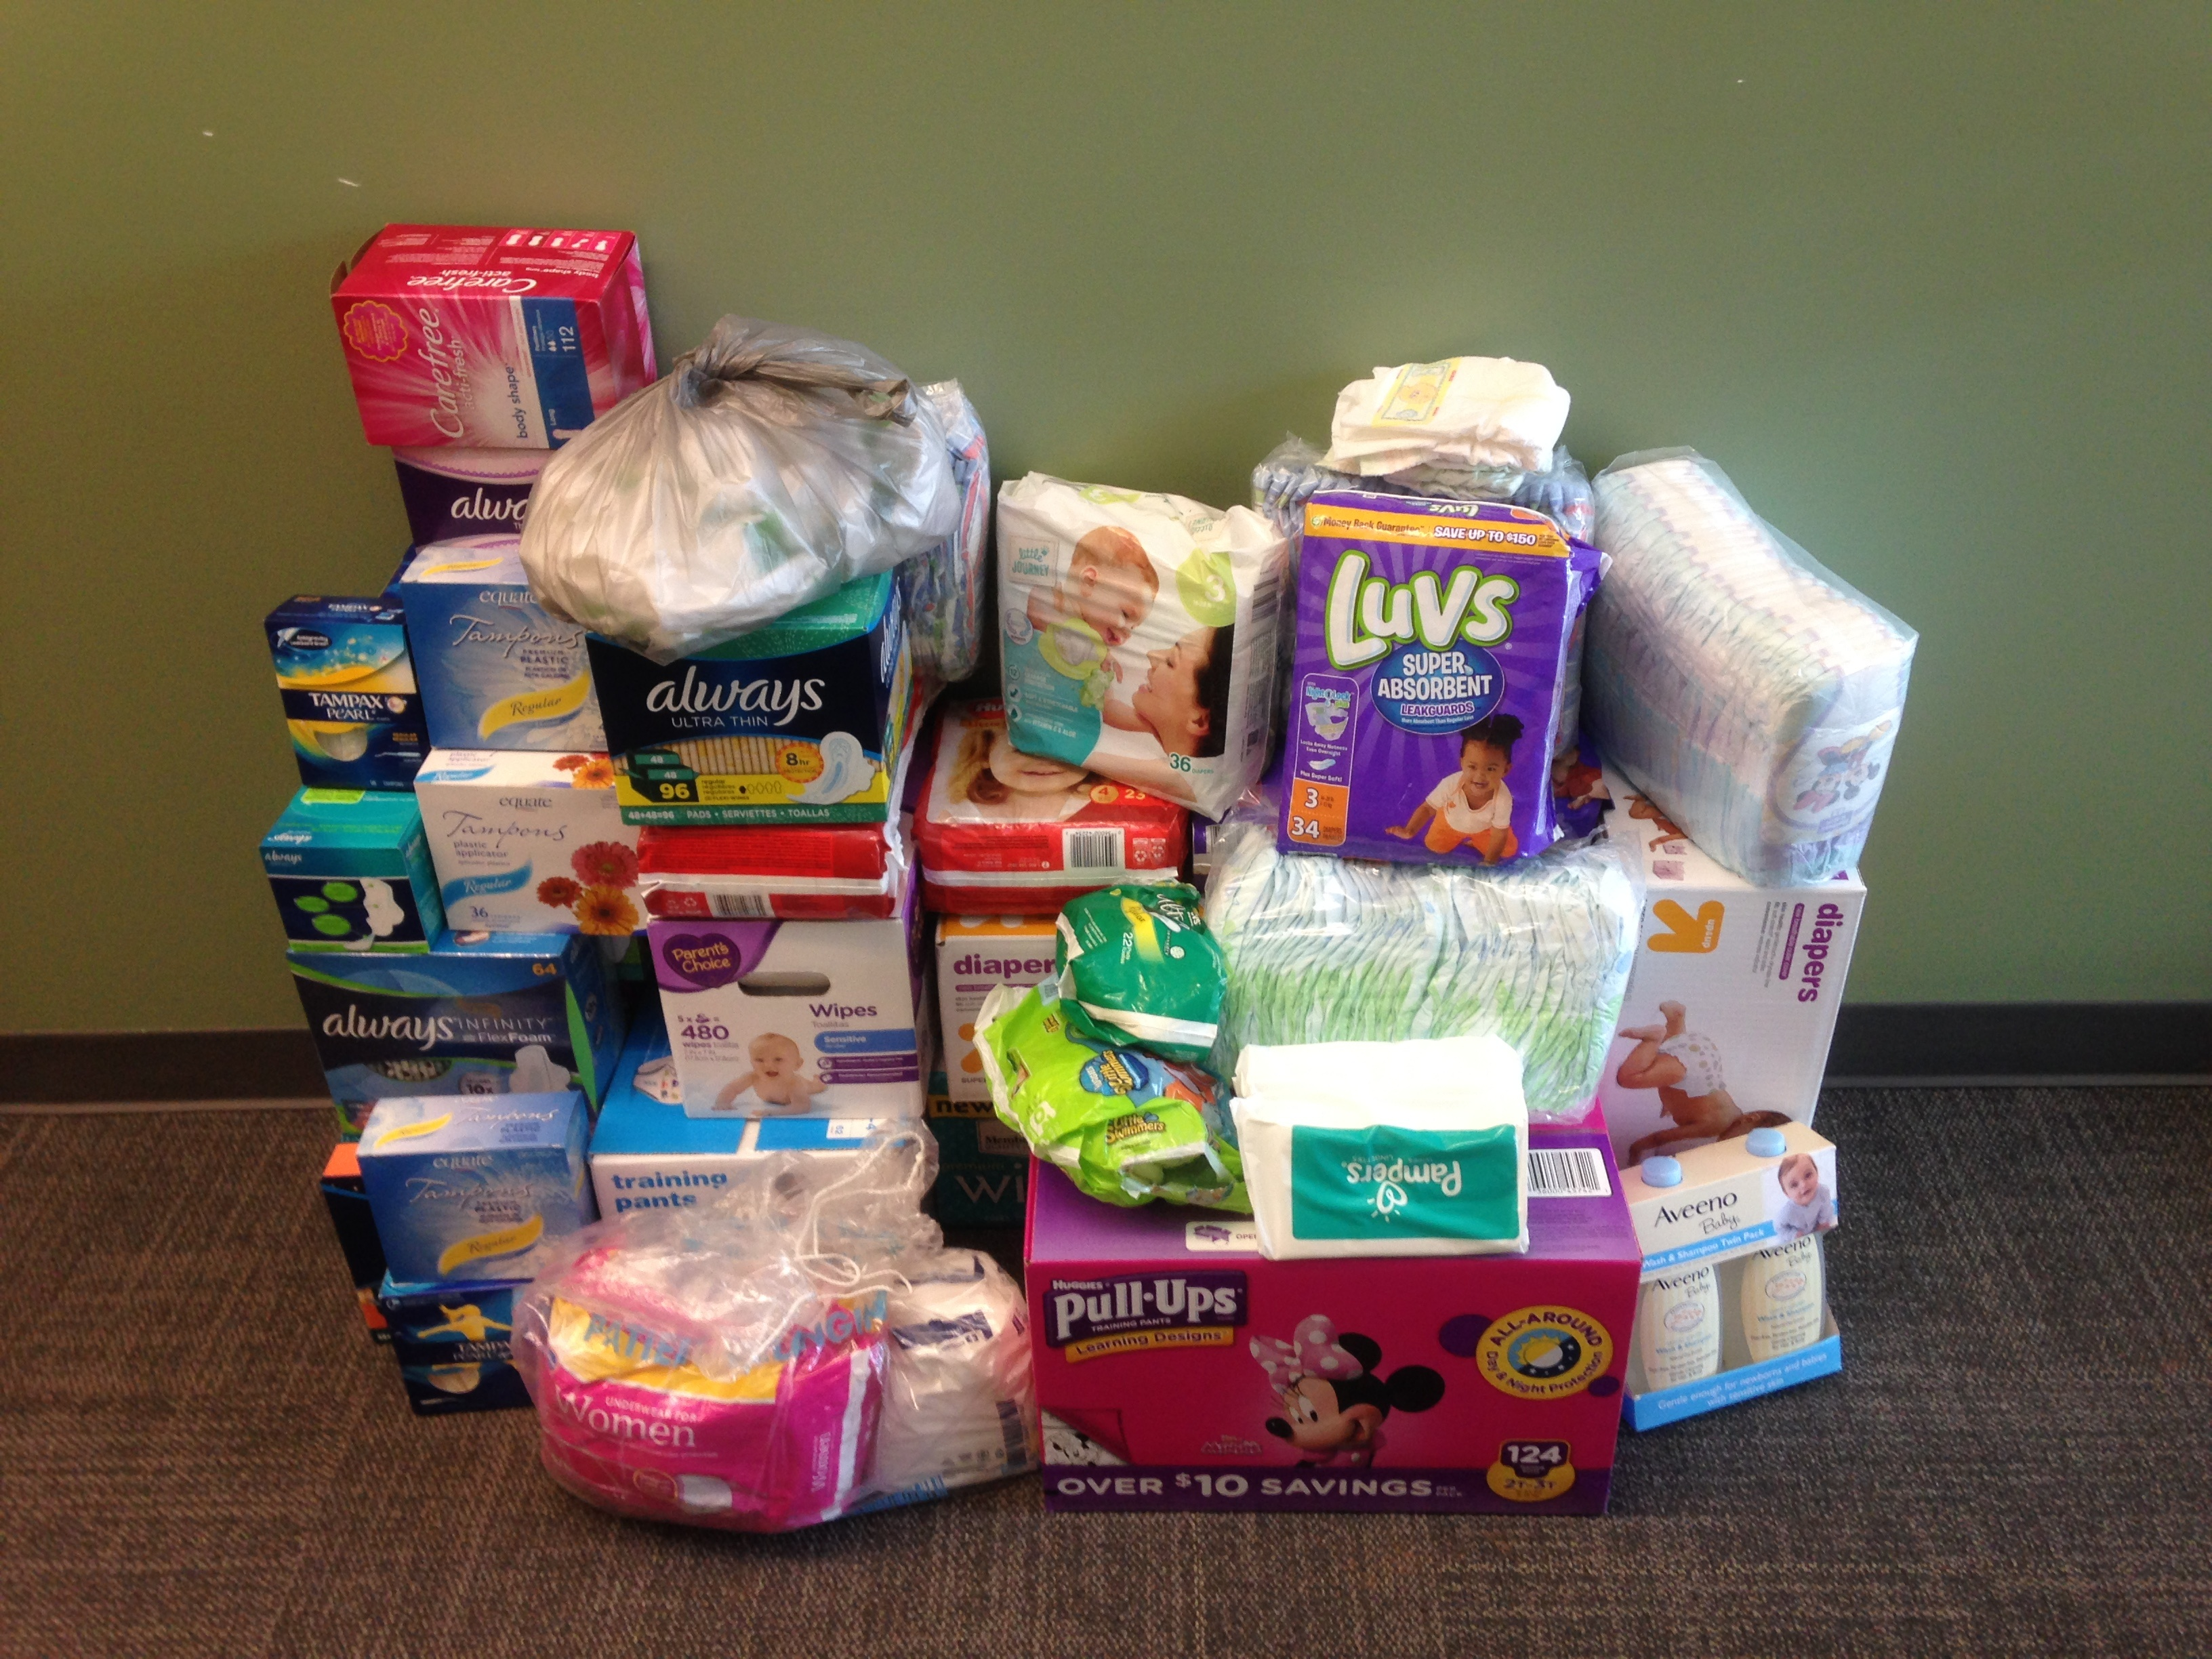 All the supplies that were collected and donated to the NC Diaper Bank.